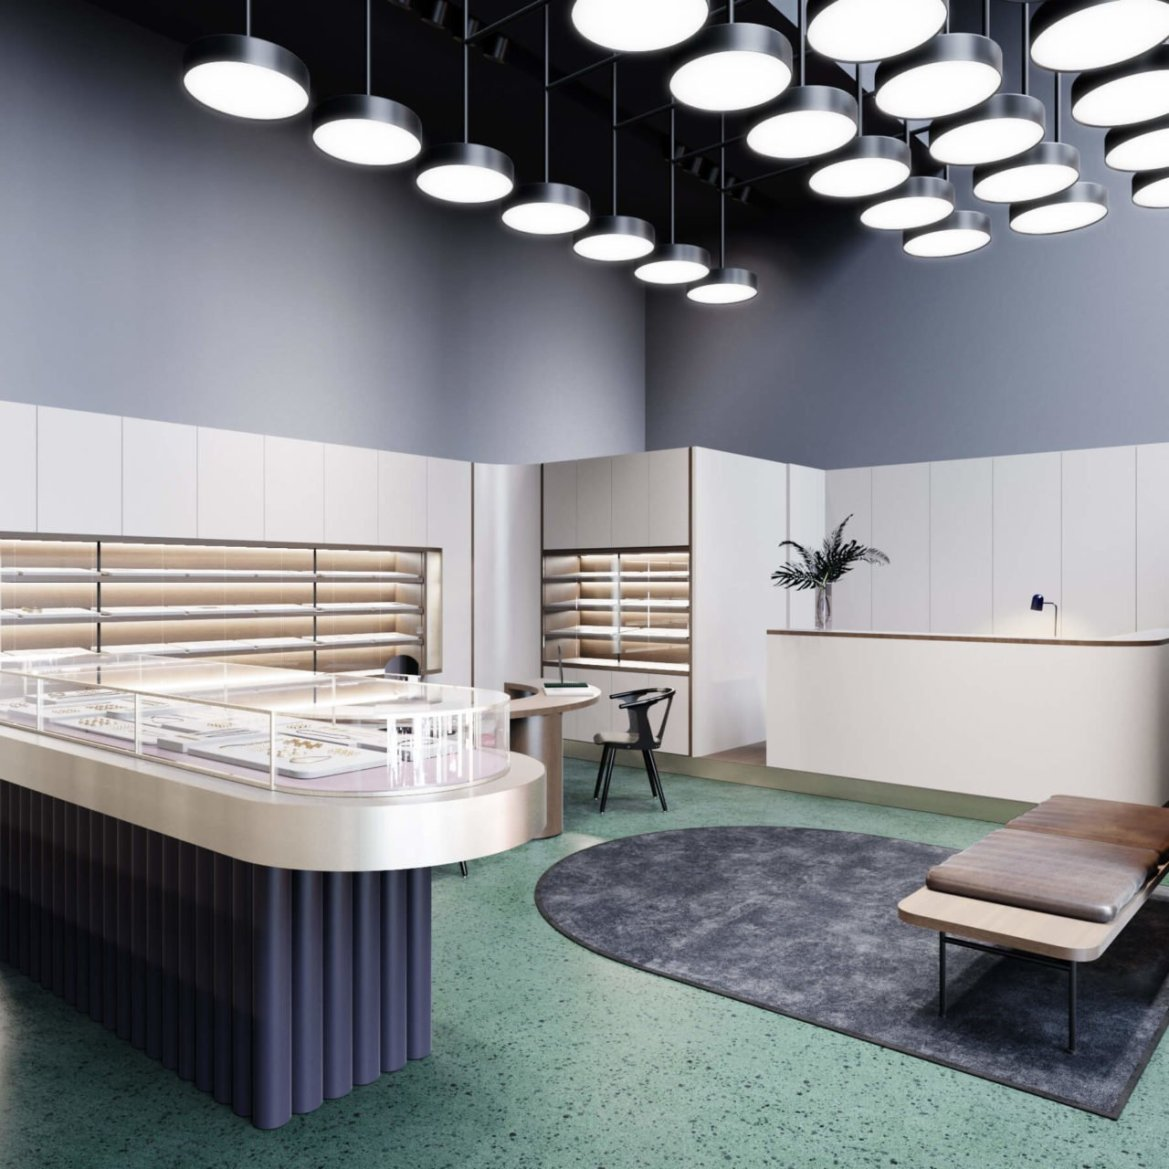 S&Tarchitects, jewelry store in Astana, curated by huskdesignblog.com